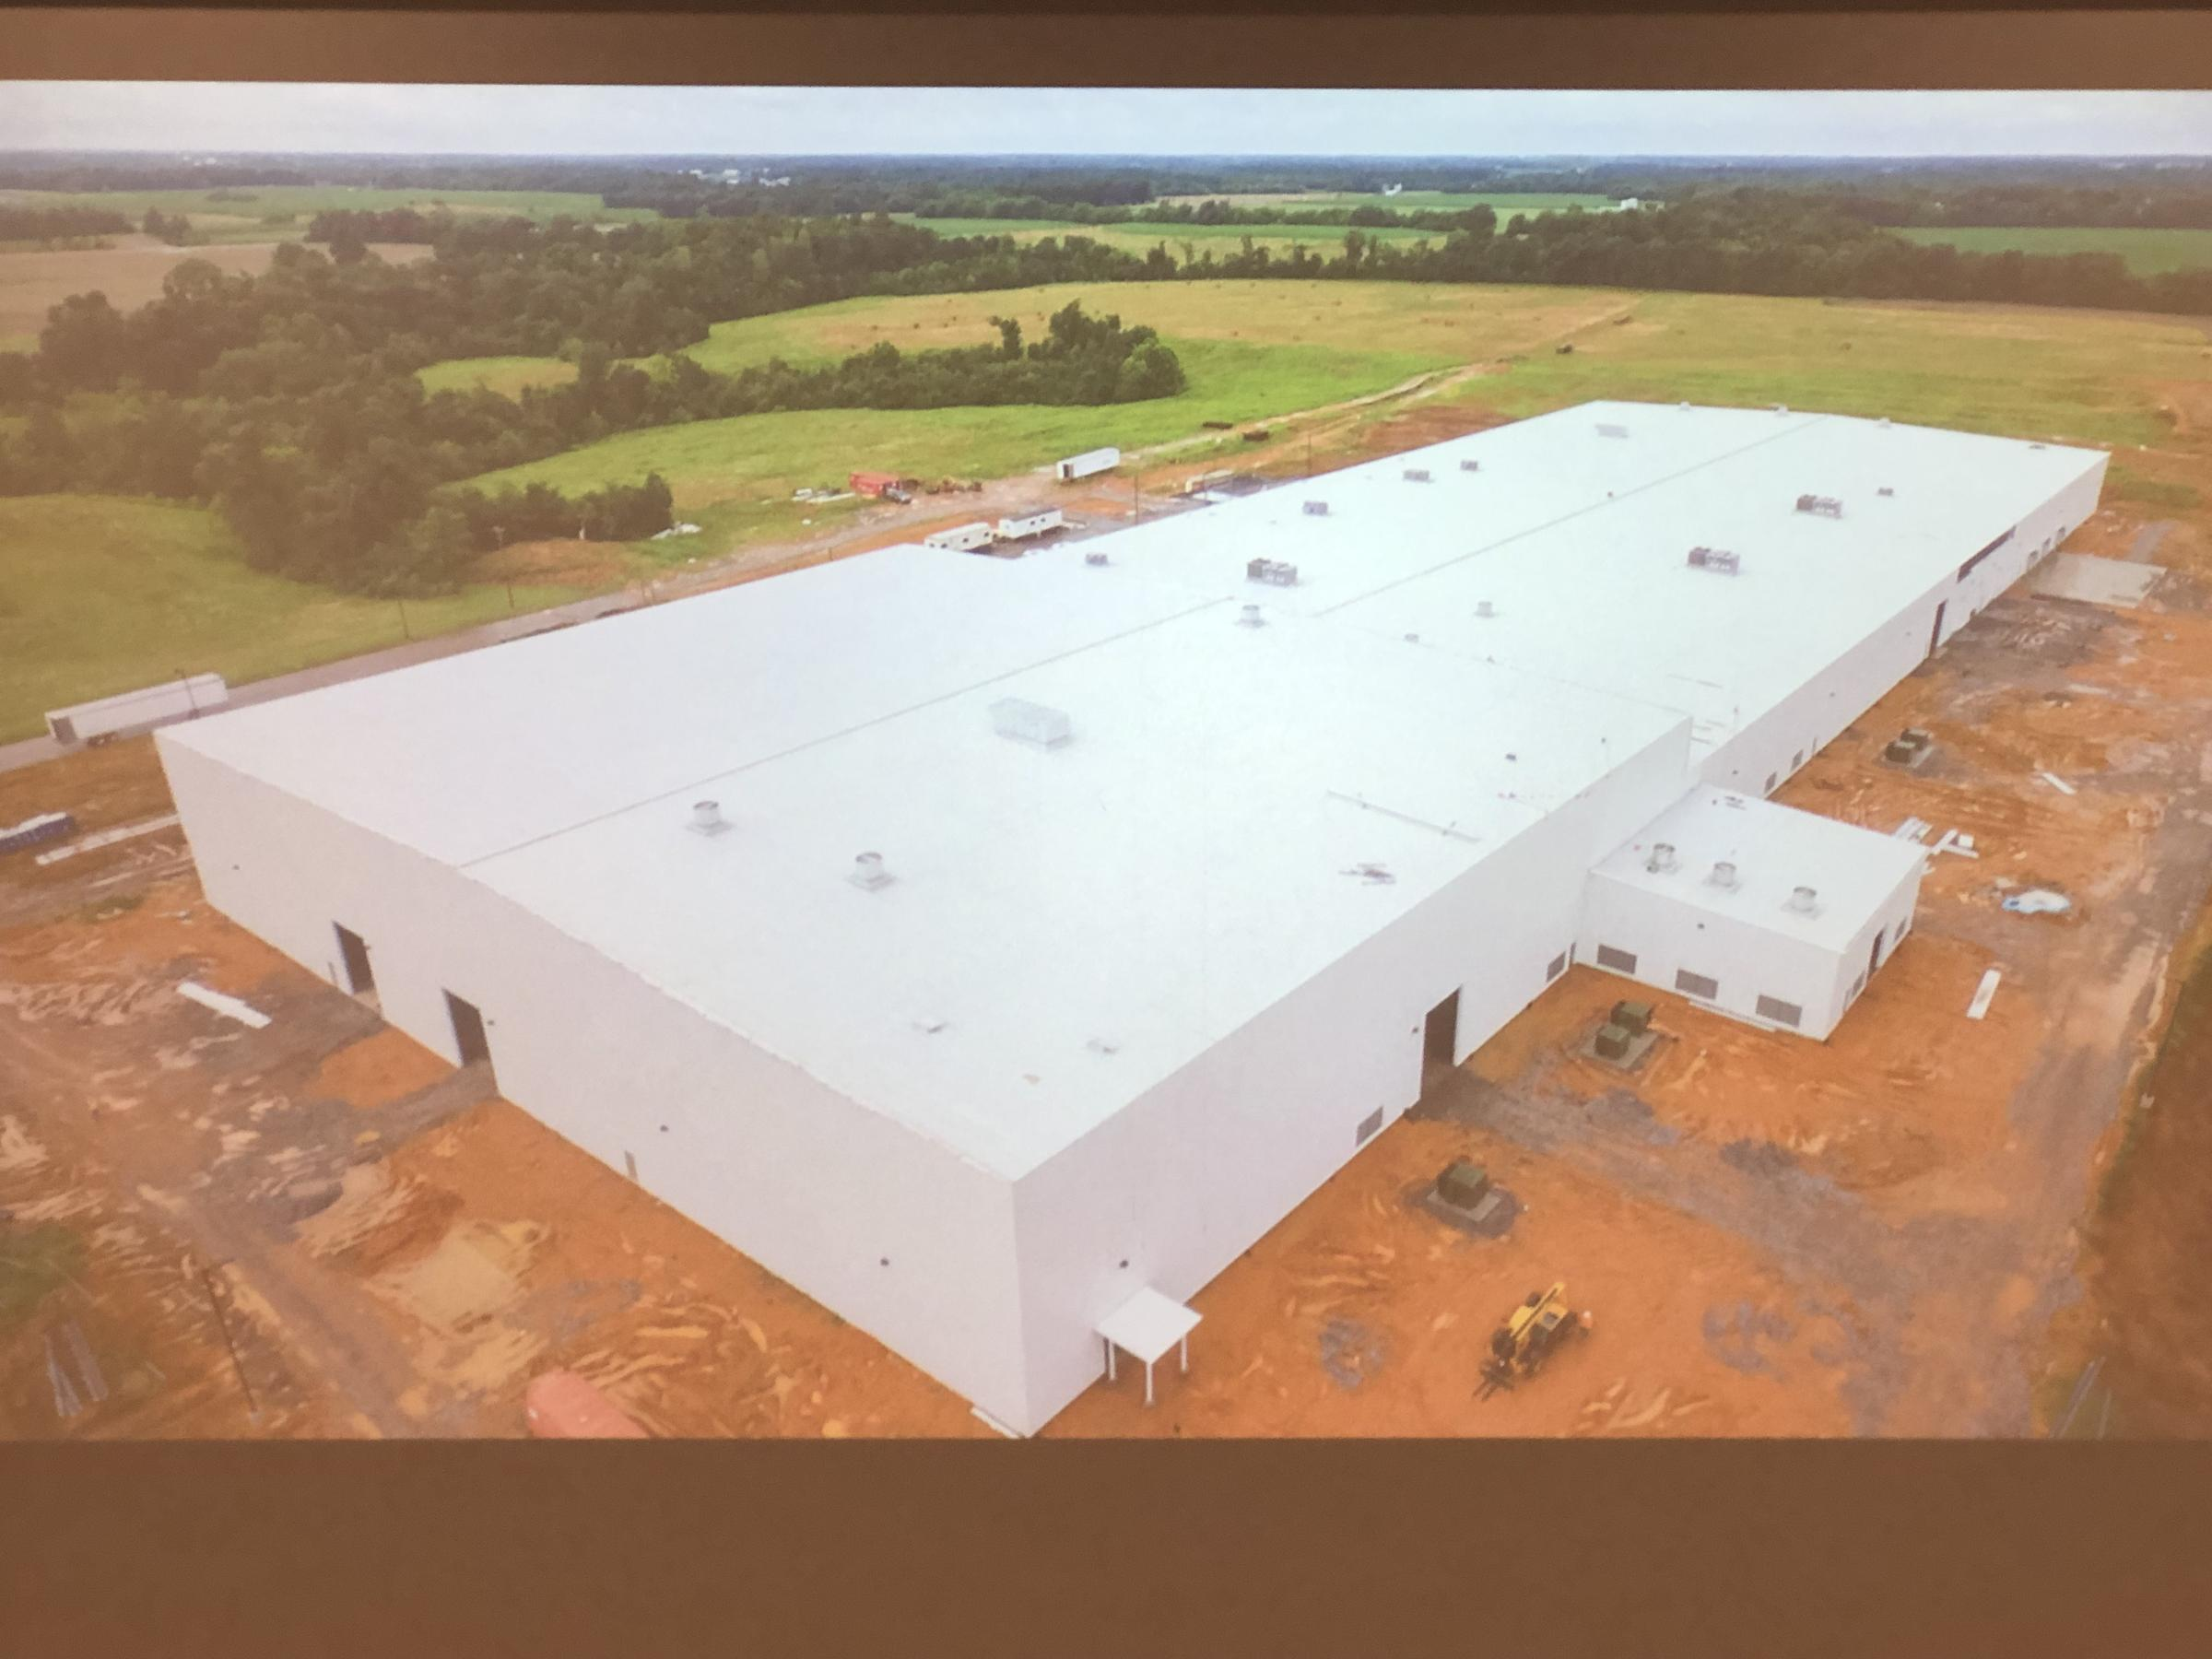 Korean Auto Parts Maker Nearing Completion On $50M Facility In